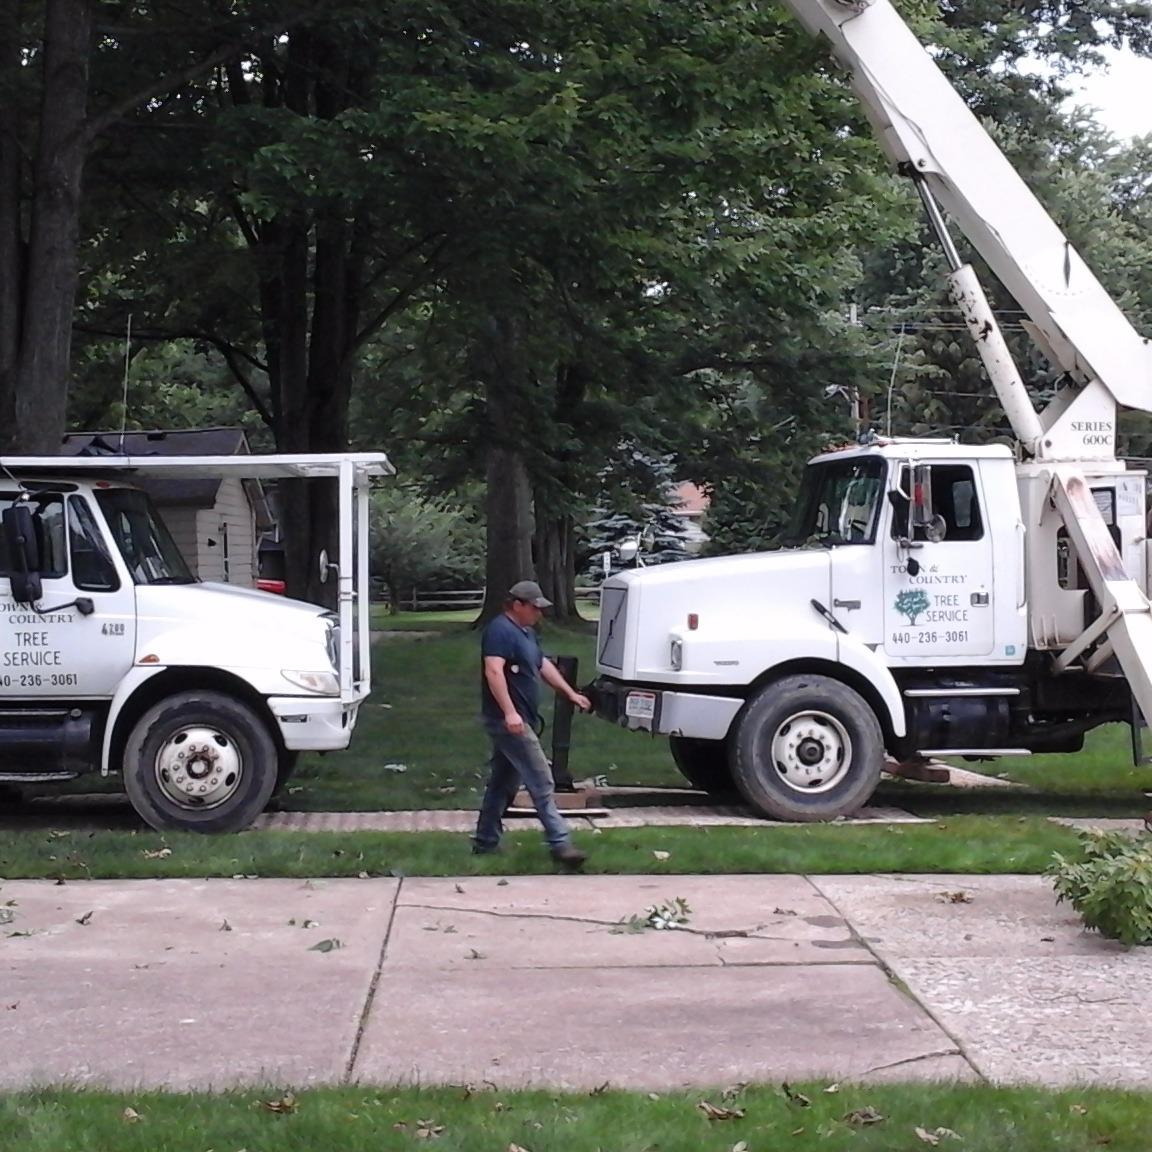 TOWN & COUNTRY TREE SERVICE - Columbia Station, OH - Tree Services